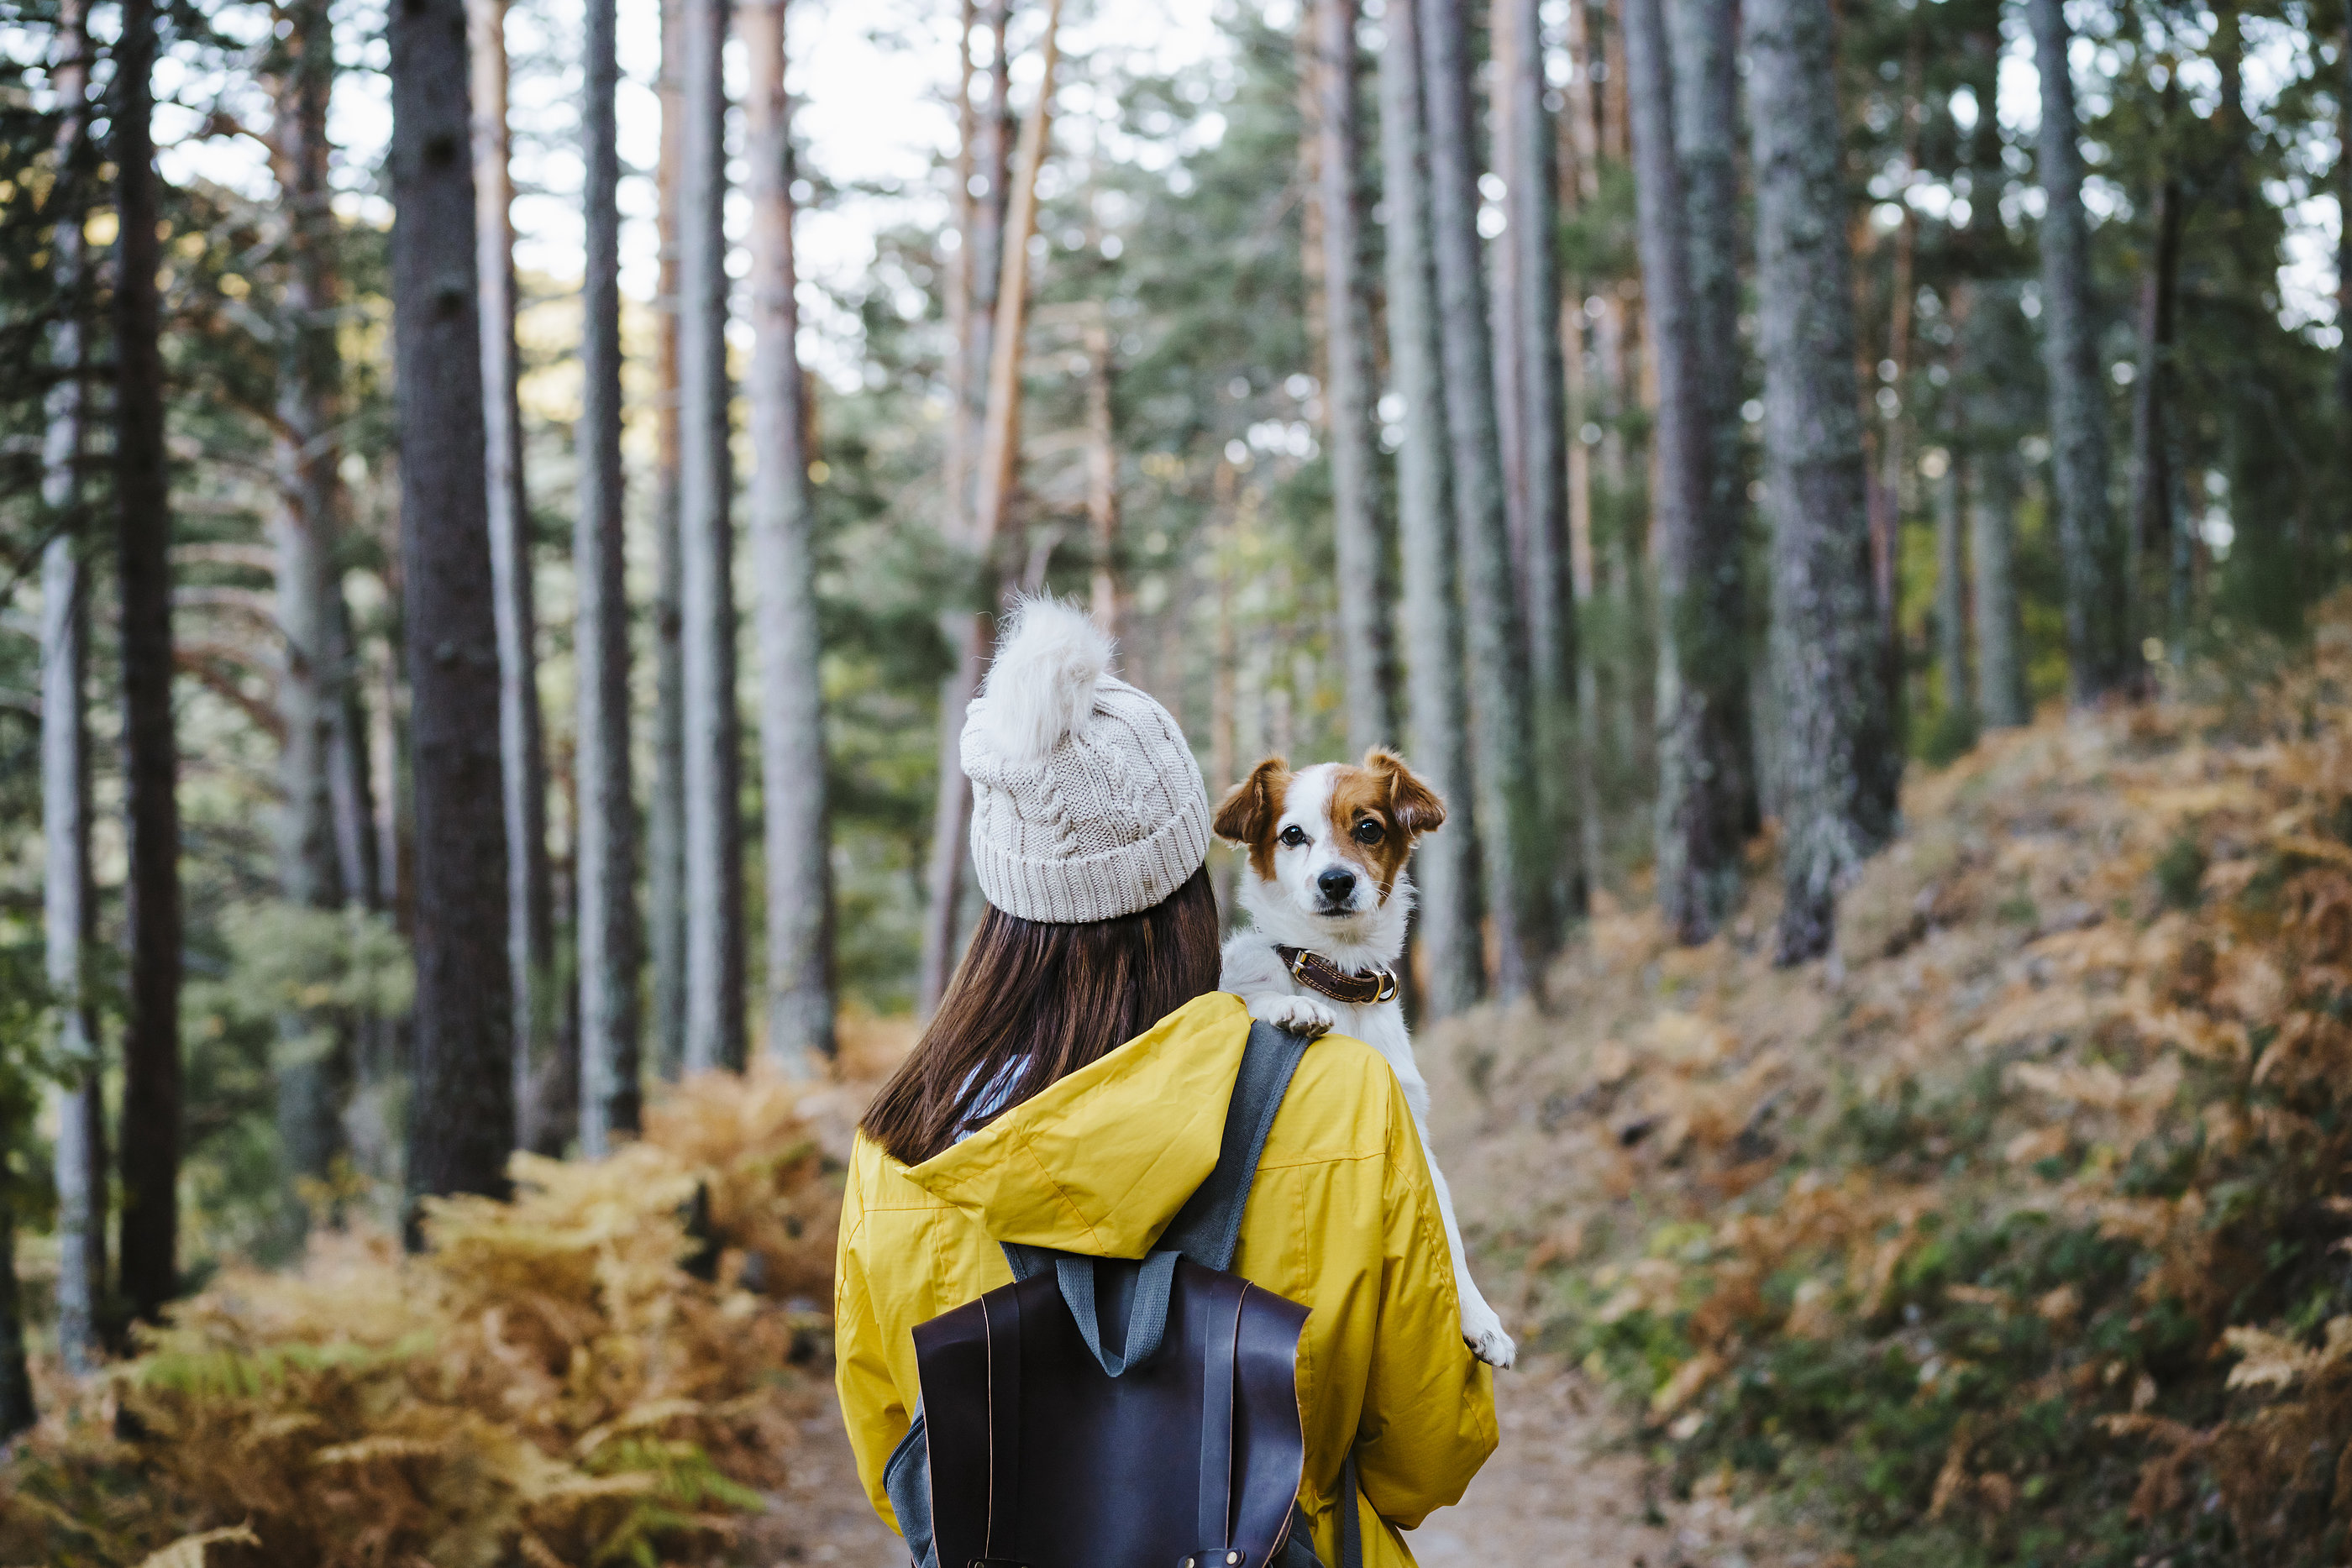 Woman holding dog in her arms in the forest.